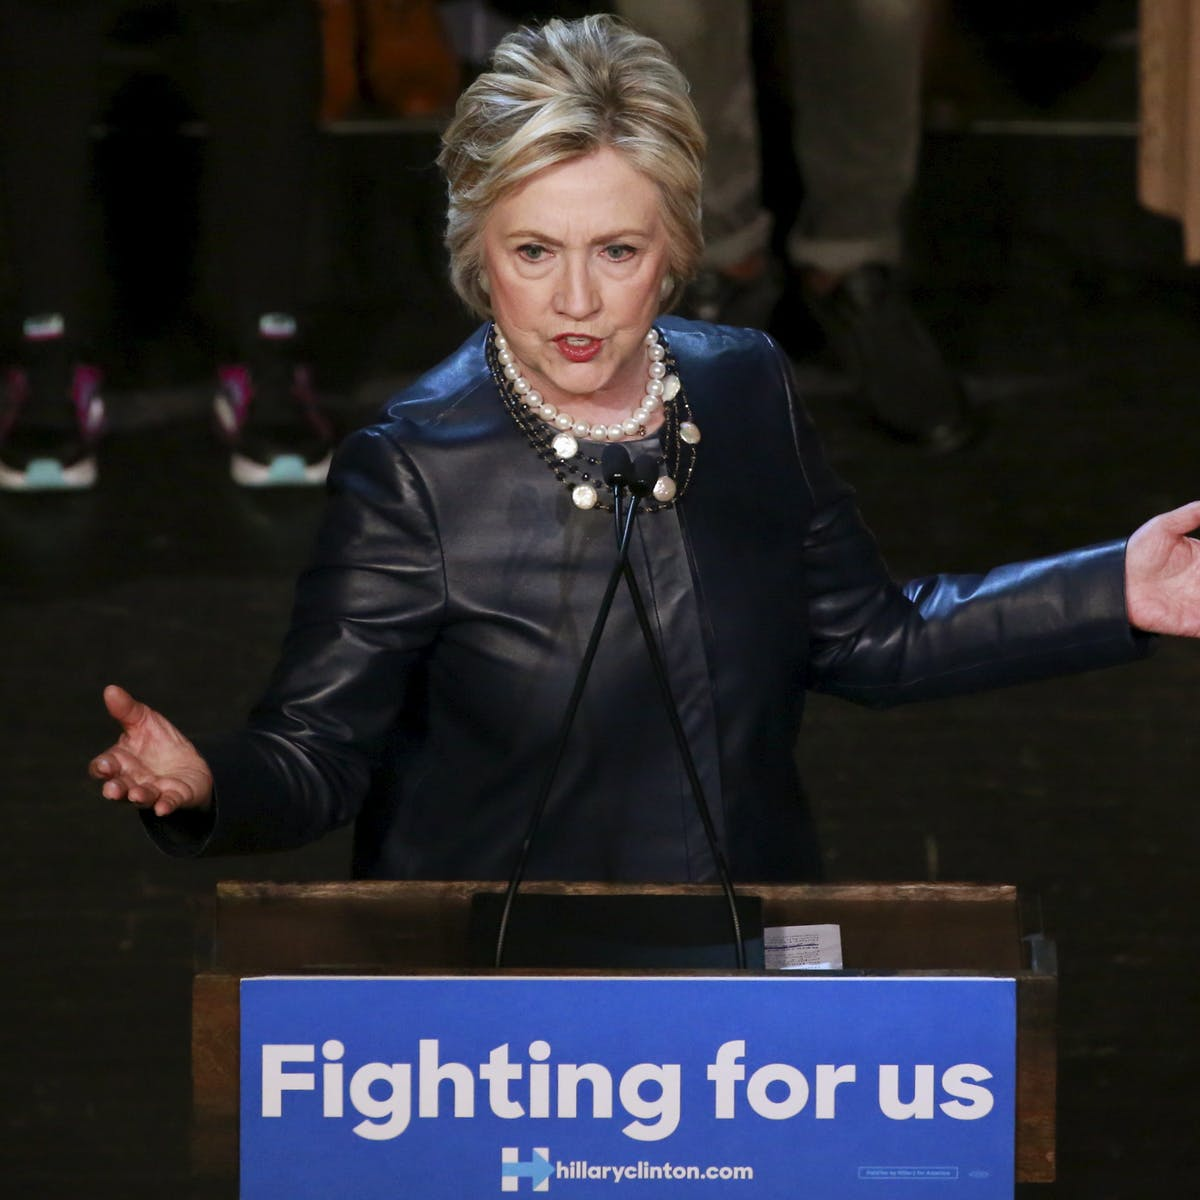 Hillary Clinton as president will not necessarily be a feminist coup